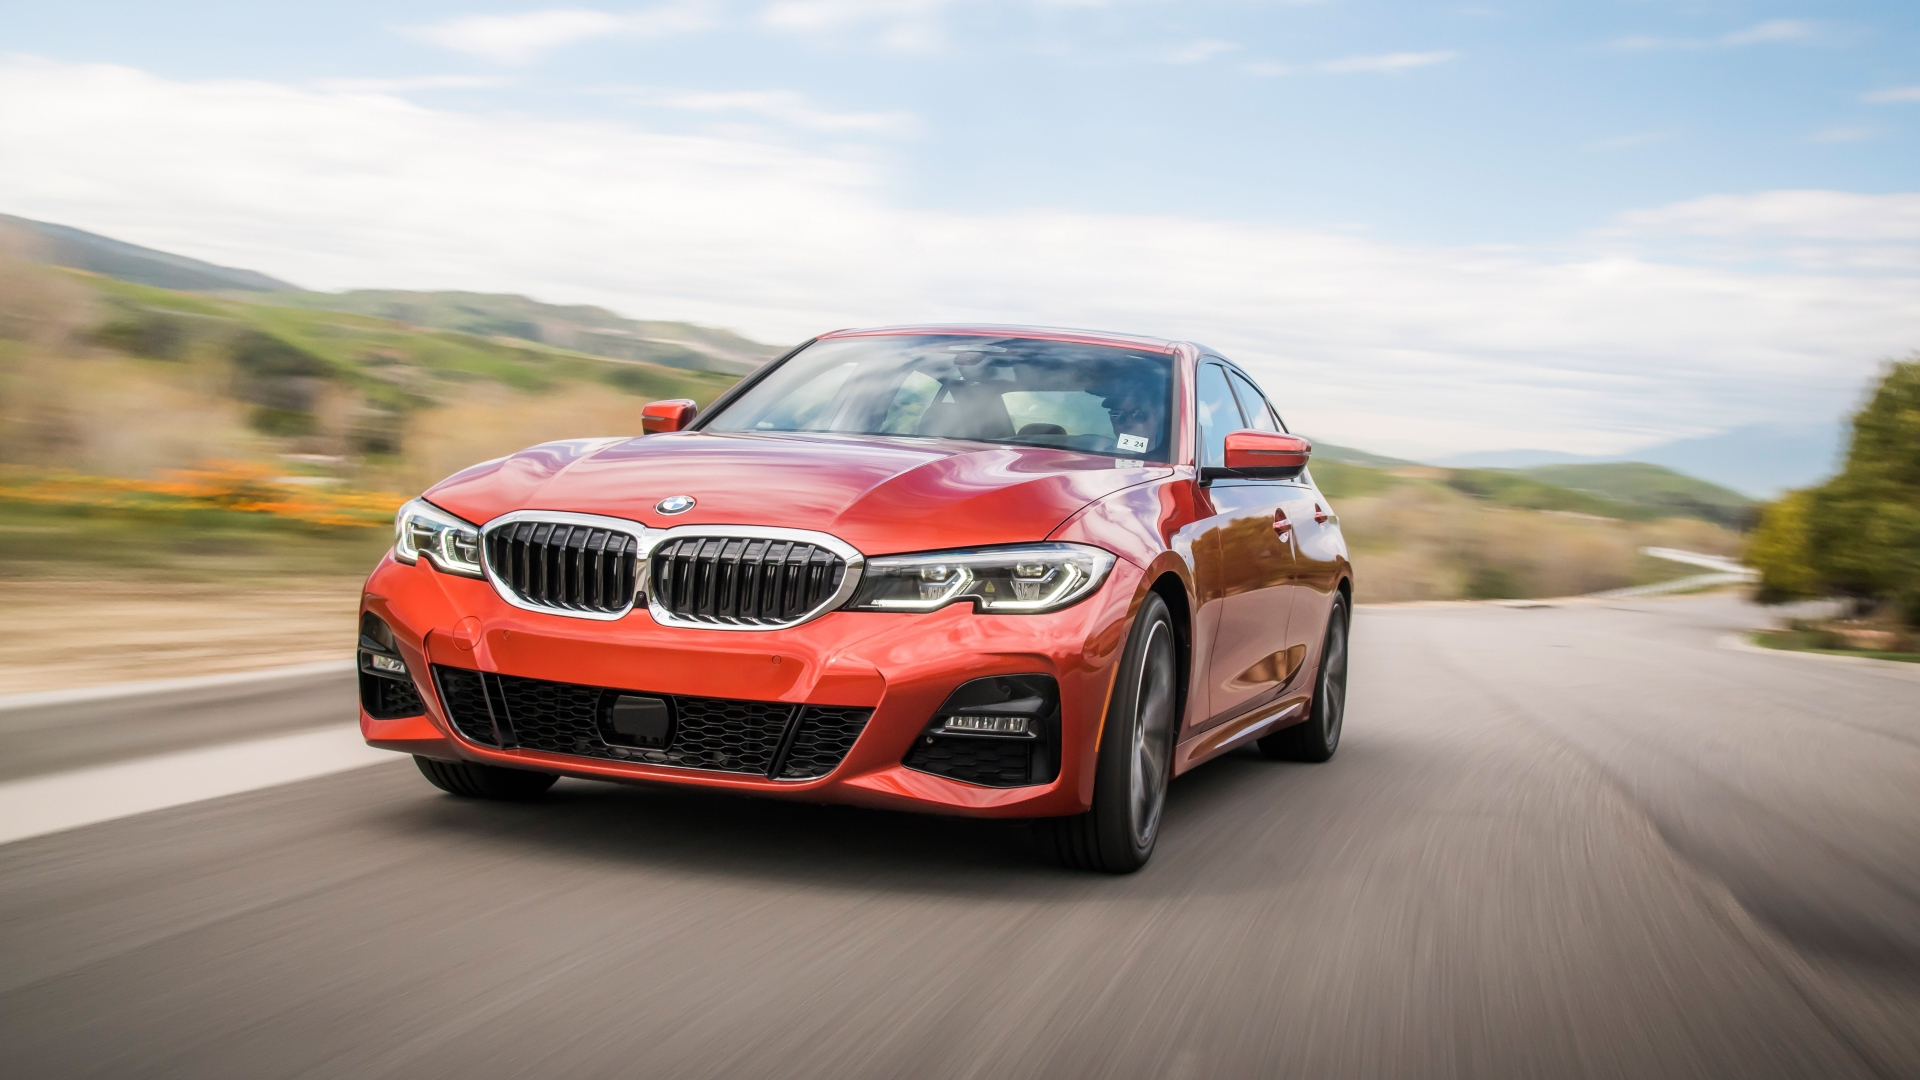 Bmw G20 Sunset Orange - HD Wallpaper